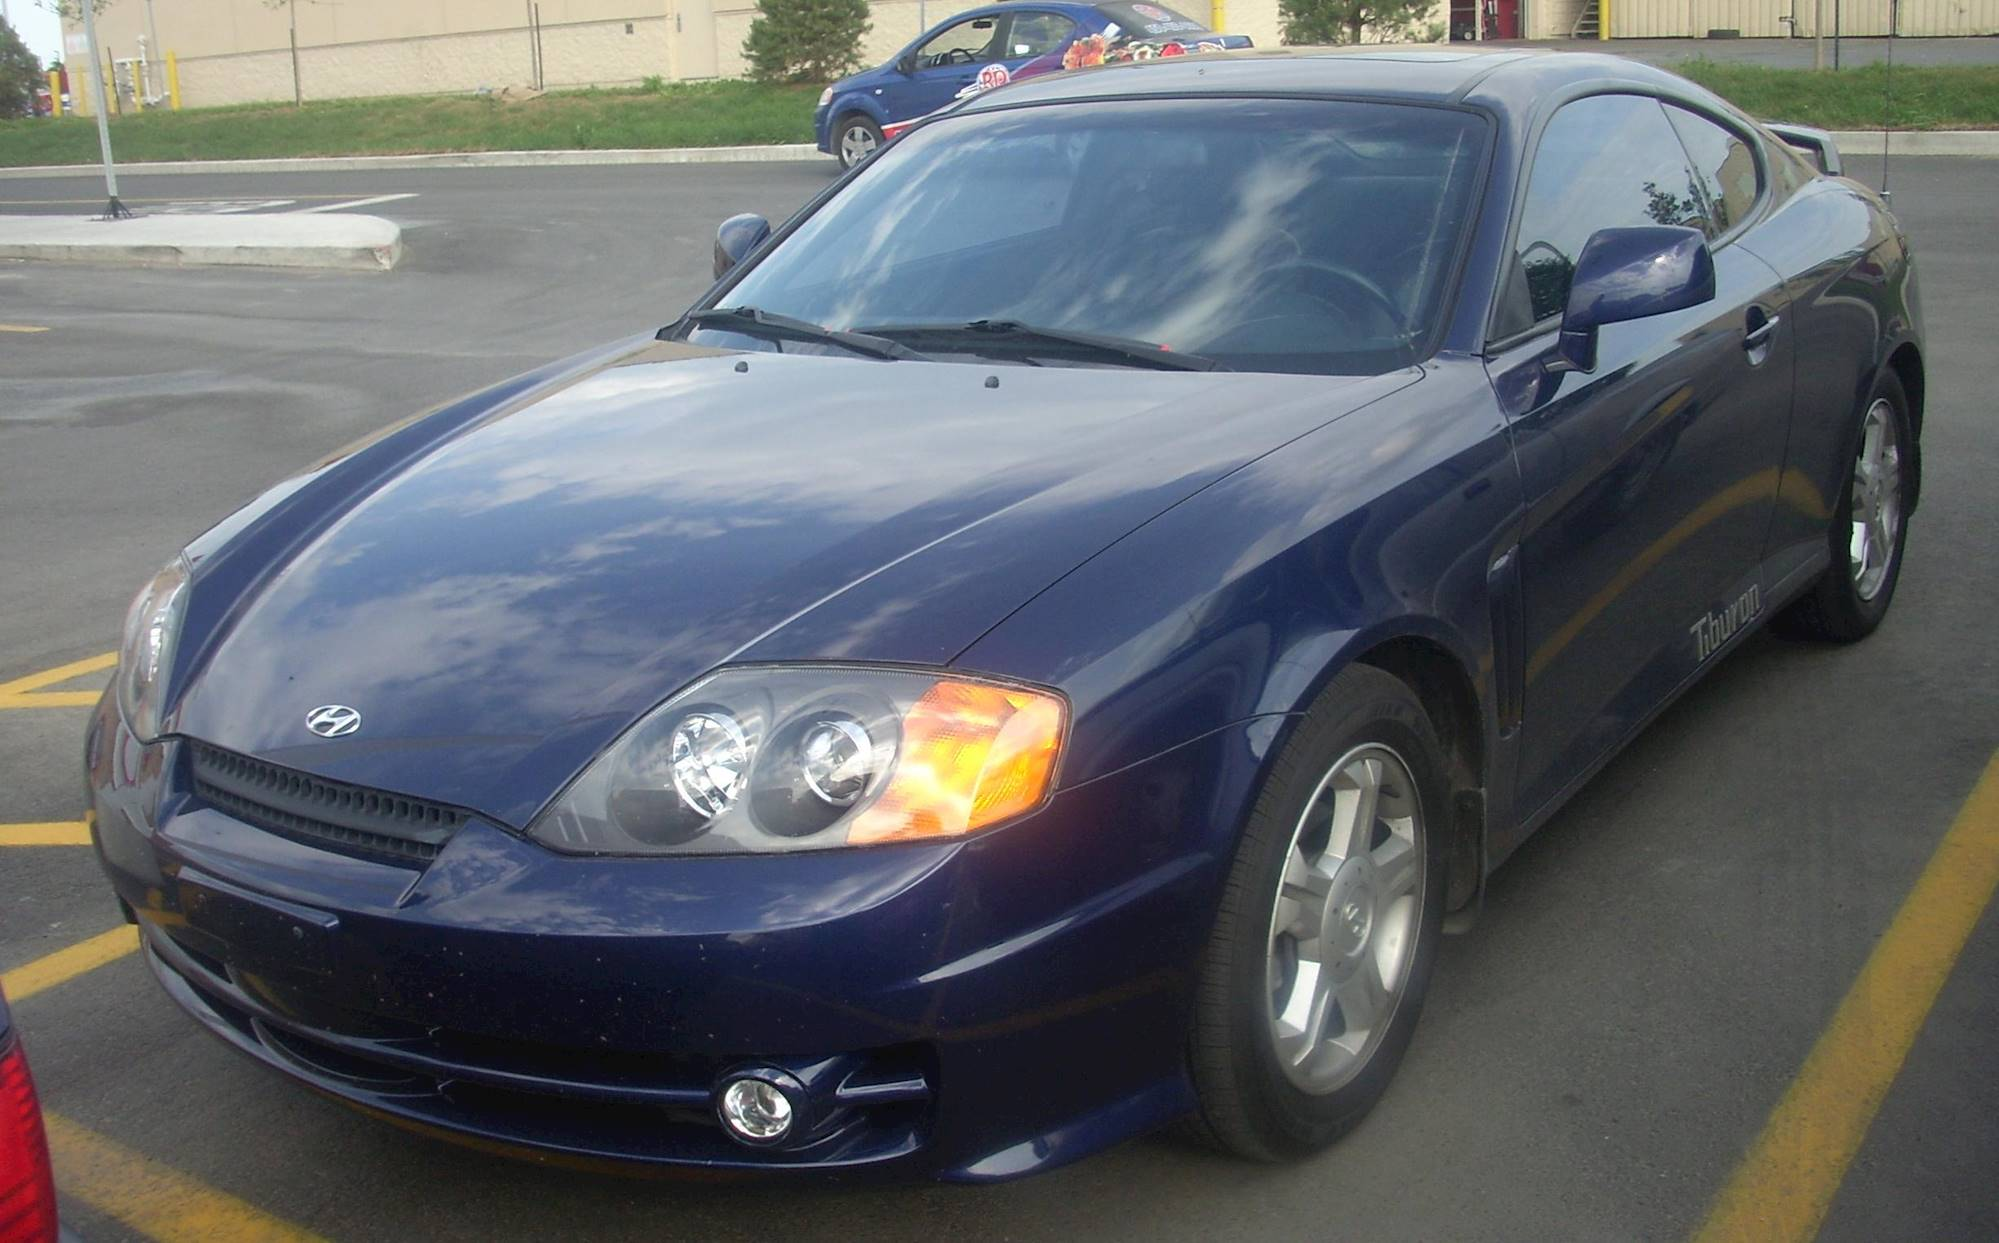 2000 Hyundai Tiburon Base Pkg 3 & 4 2dr Coupe 5 spd manual w OD